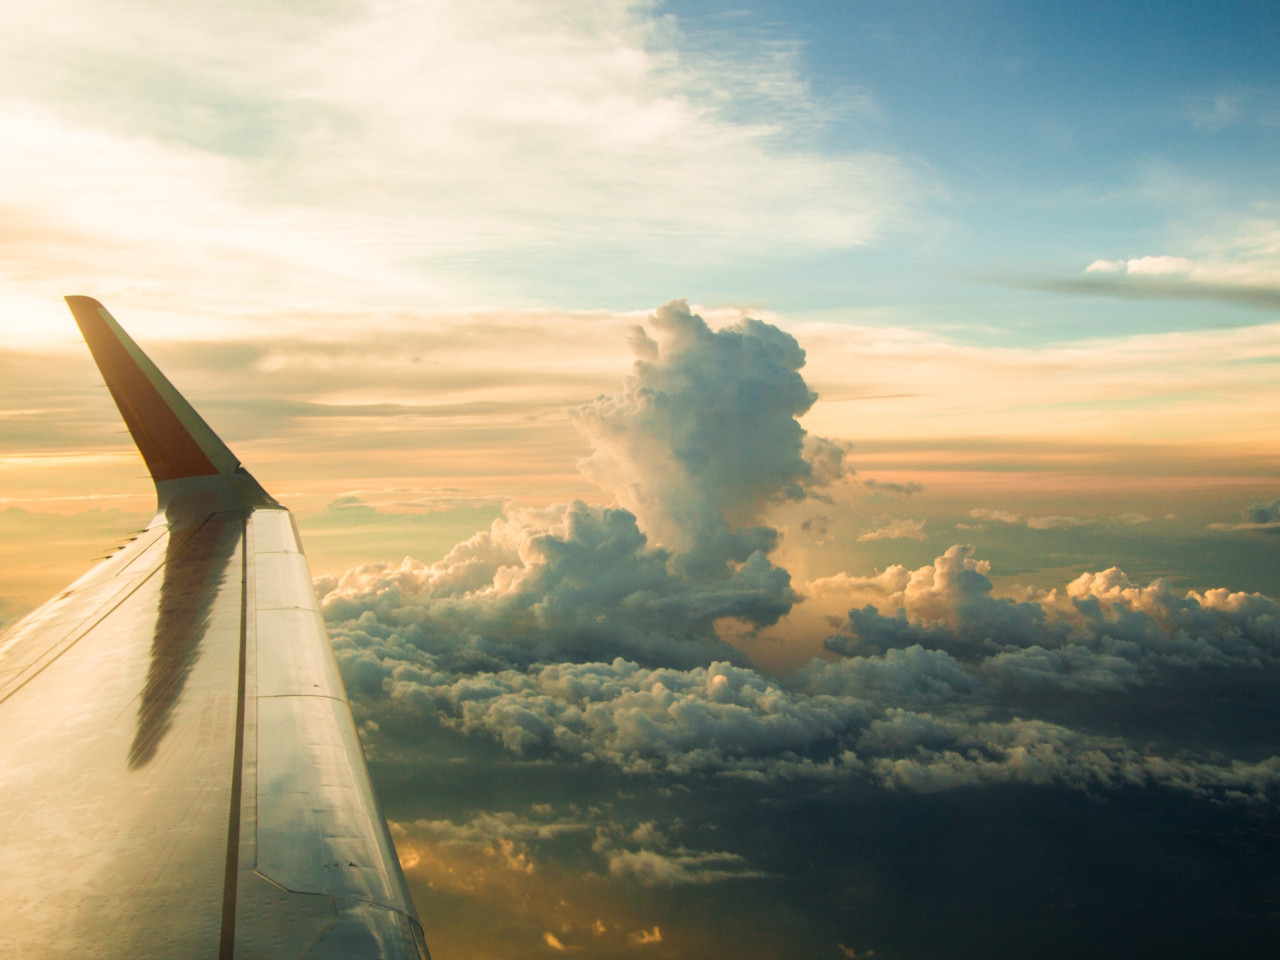 View from the airplane window | 1280x960 wallpaper